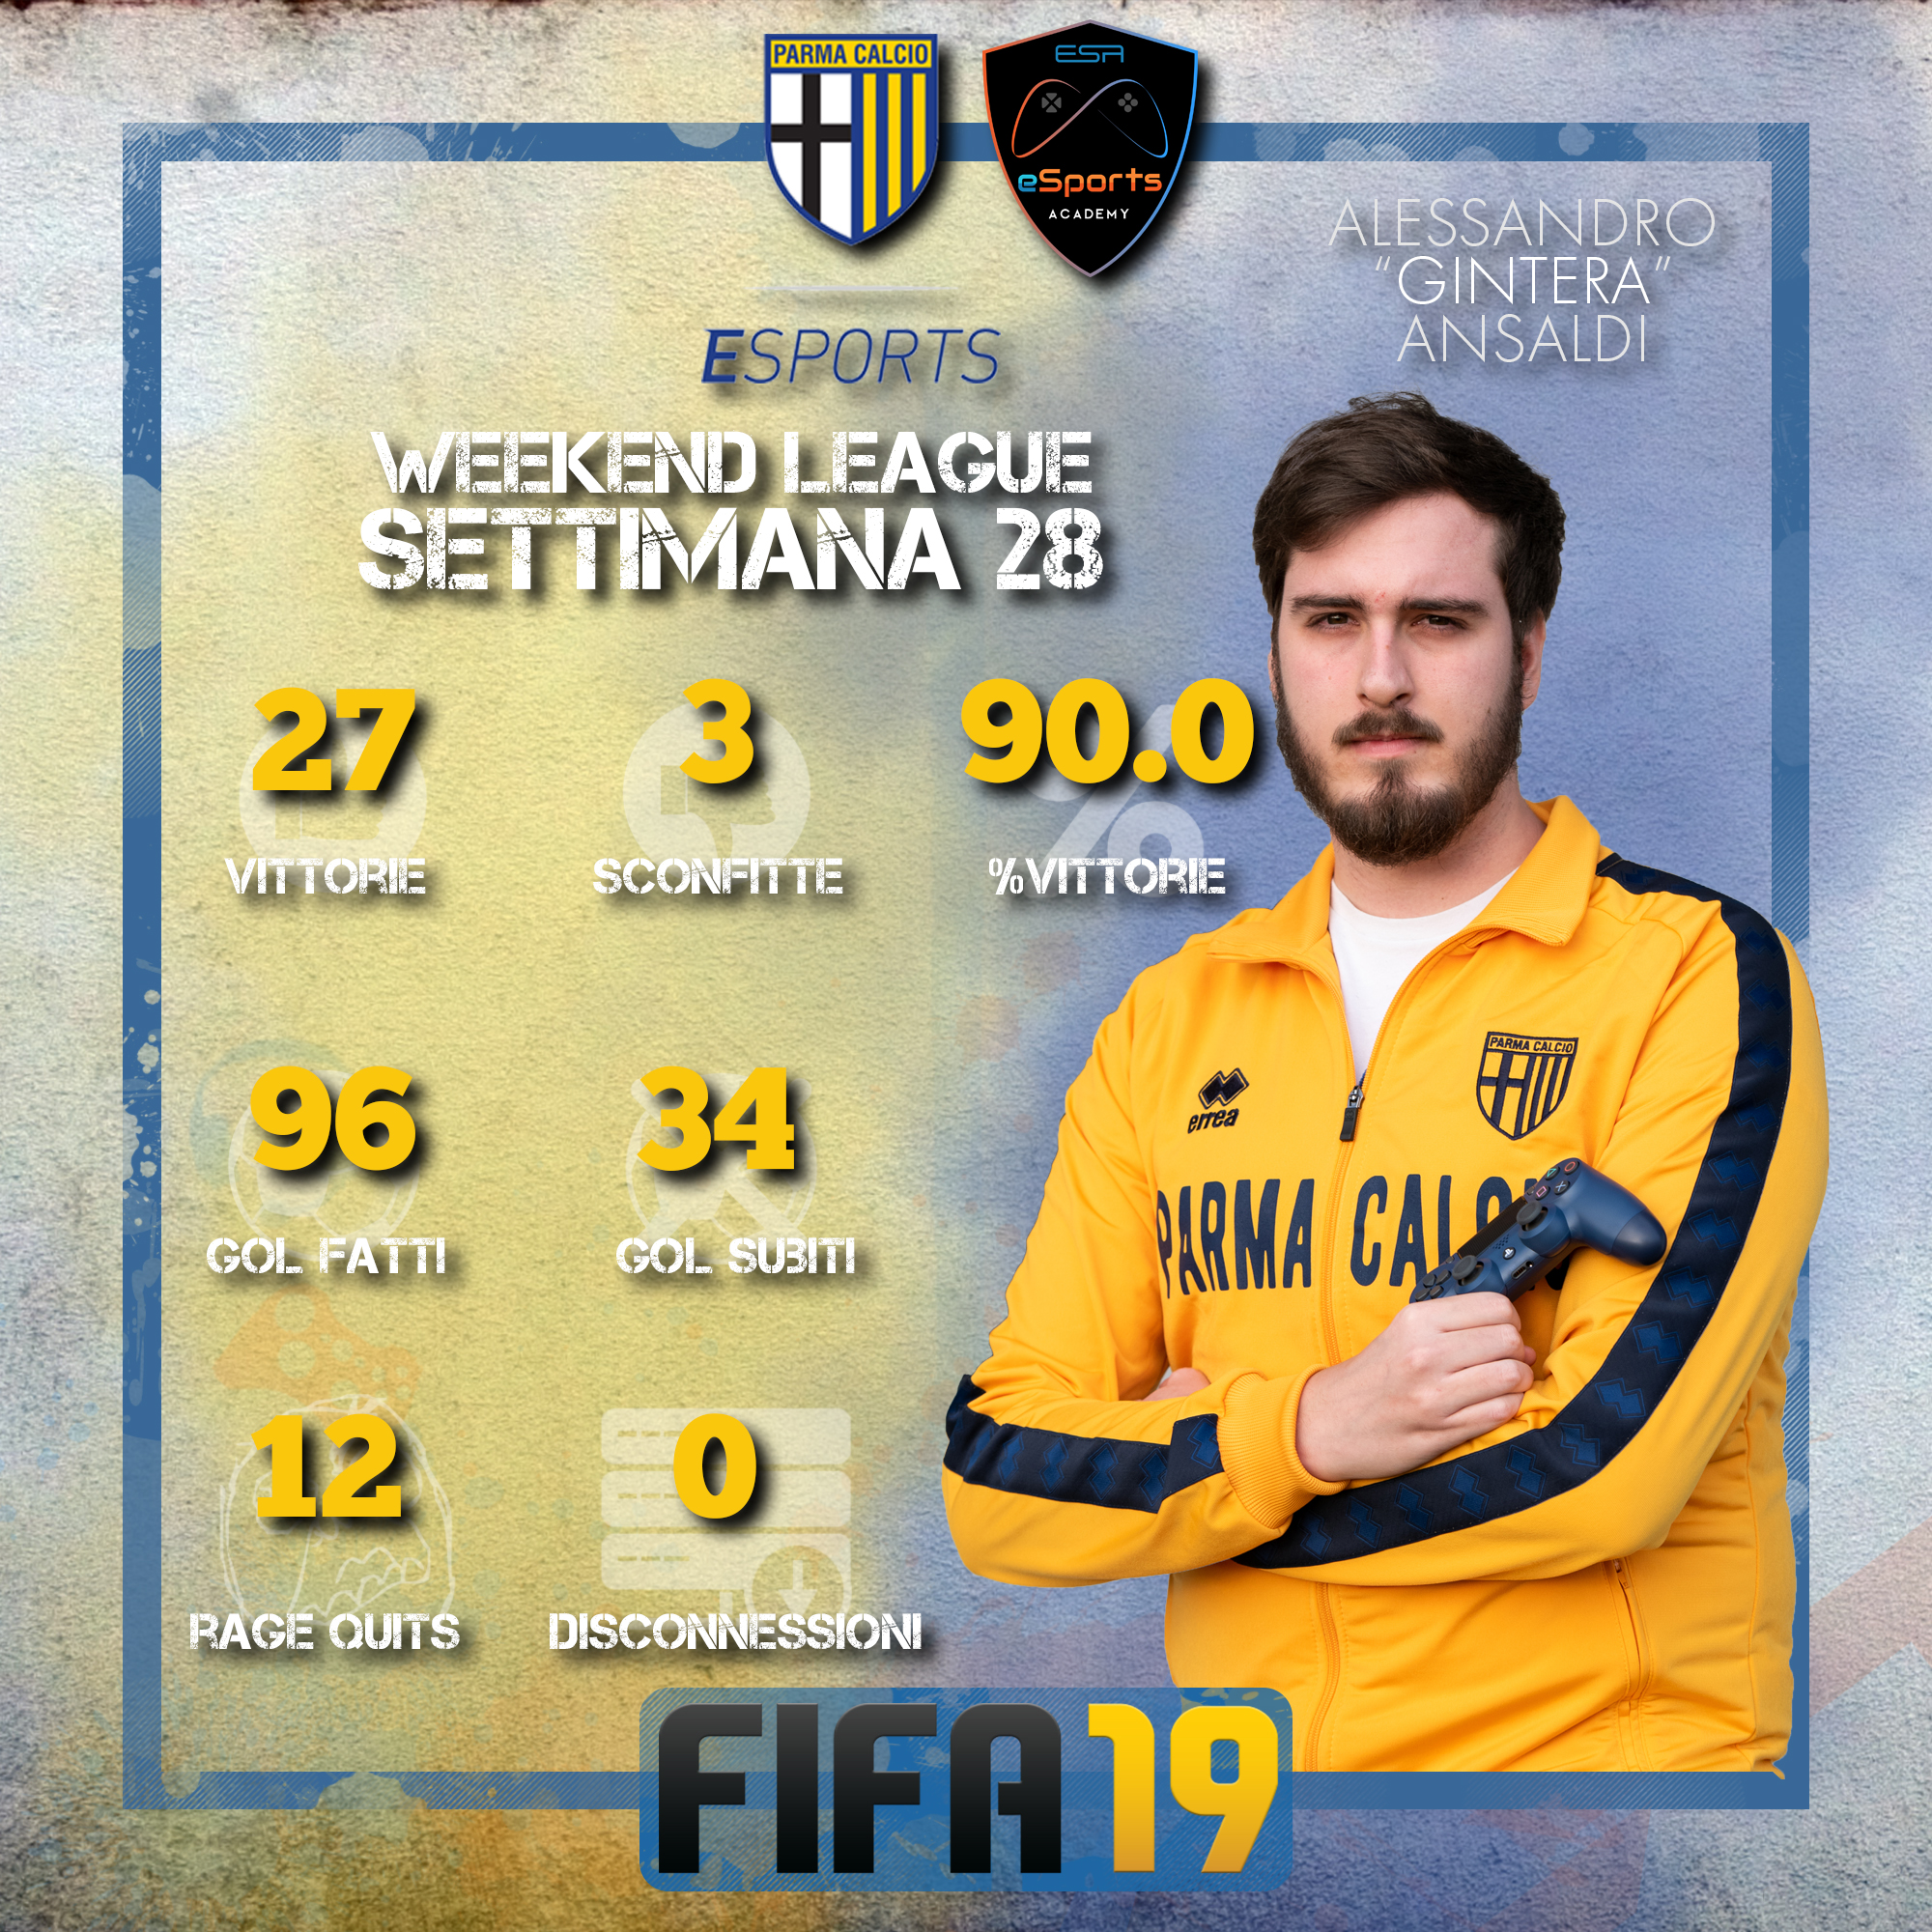 Fifa19_Weekend League_Week28_Gintera.jpg